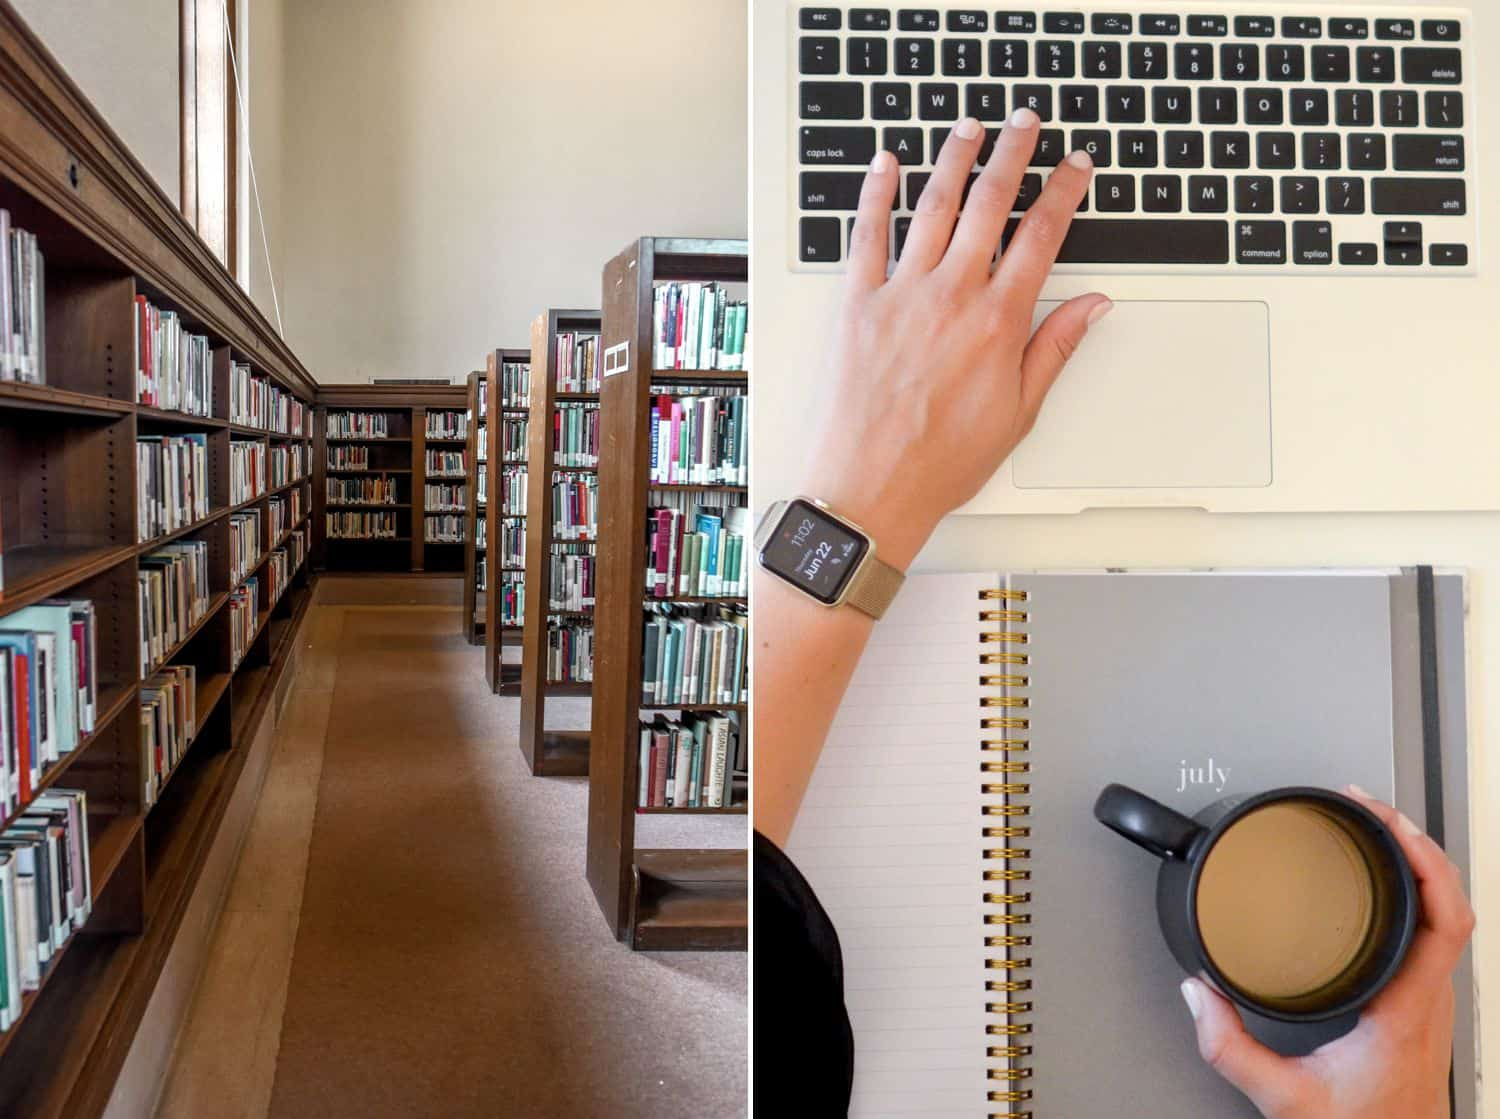 Photos of a library and a person typing on a keyboard and holding a coffee mug